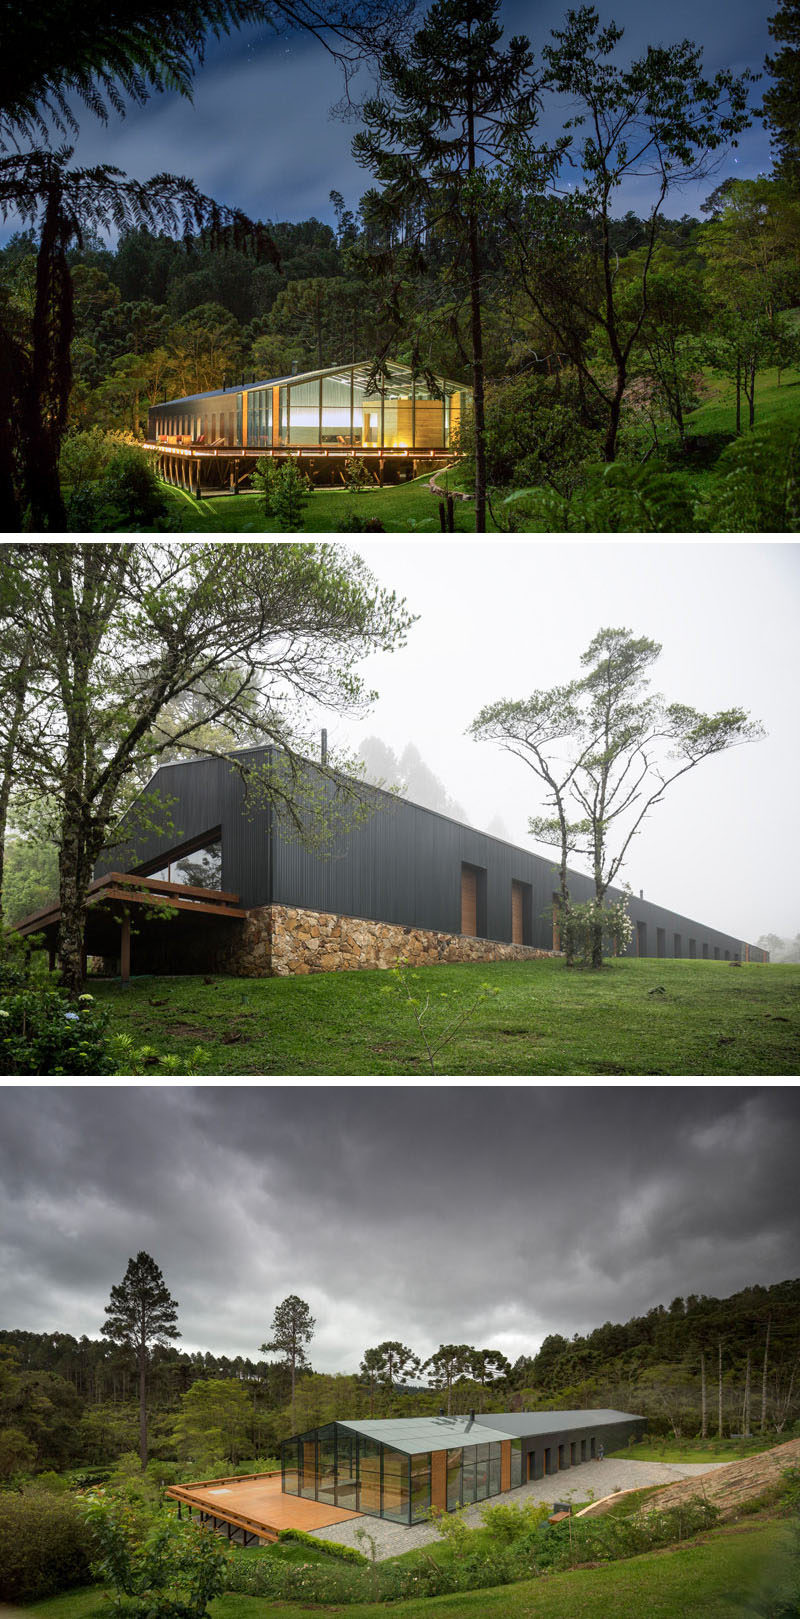 18 Modern House In The Forest // This house high in the Brazilian mountains is surrounded by lush rainforest to provide the healthiest air possible. #ModernHouse #ModernArchitecture #HouseInForest #HouseDesign